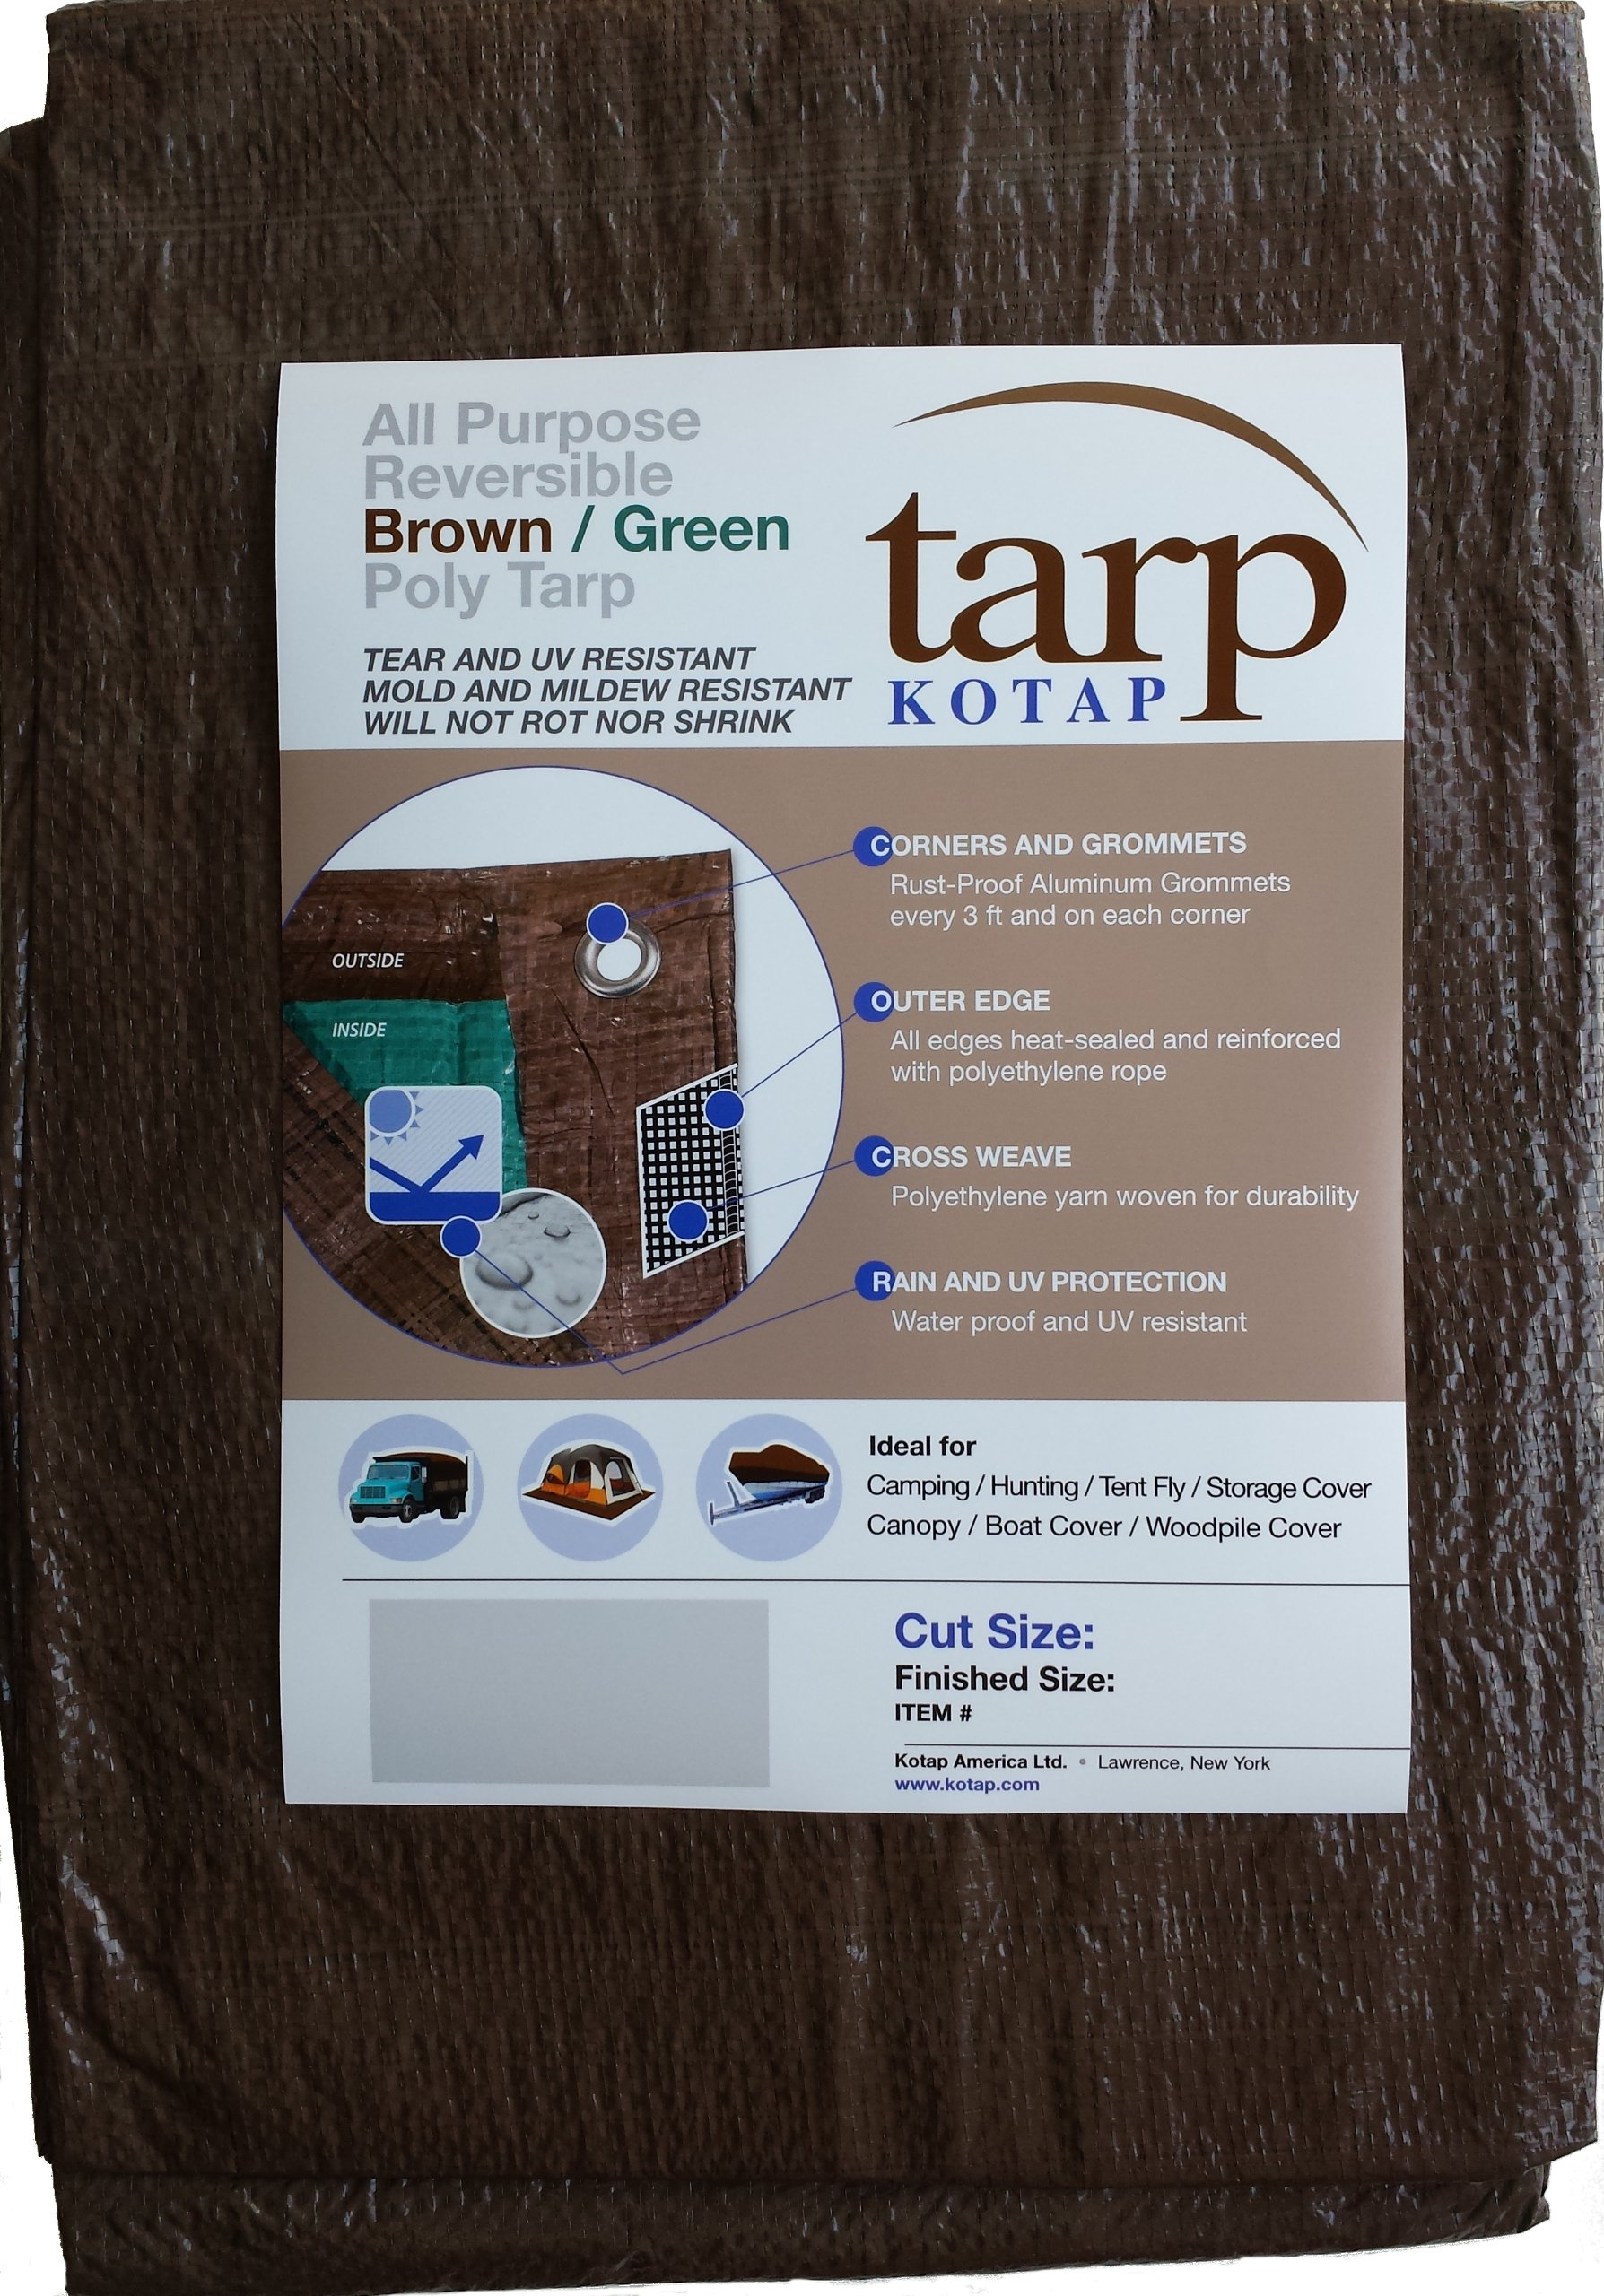 Kotap 20-ft x 20-ft Reversible Brown/Green Poly Tarp, Item: TBG-2020